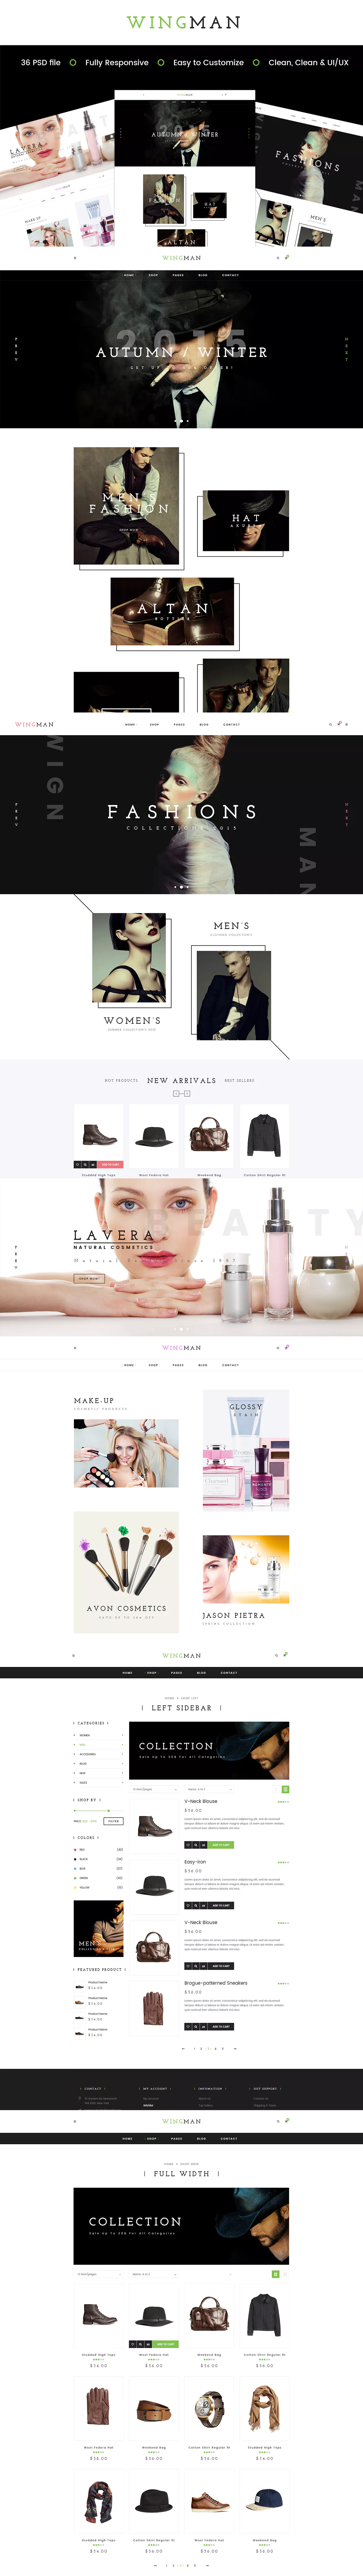 WINGMAN - E-Commerce and Blog PSD Theme | Website Design Templates ...